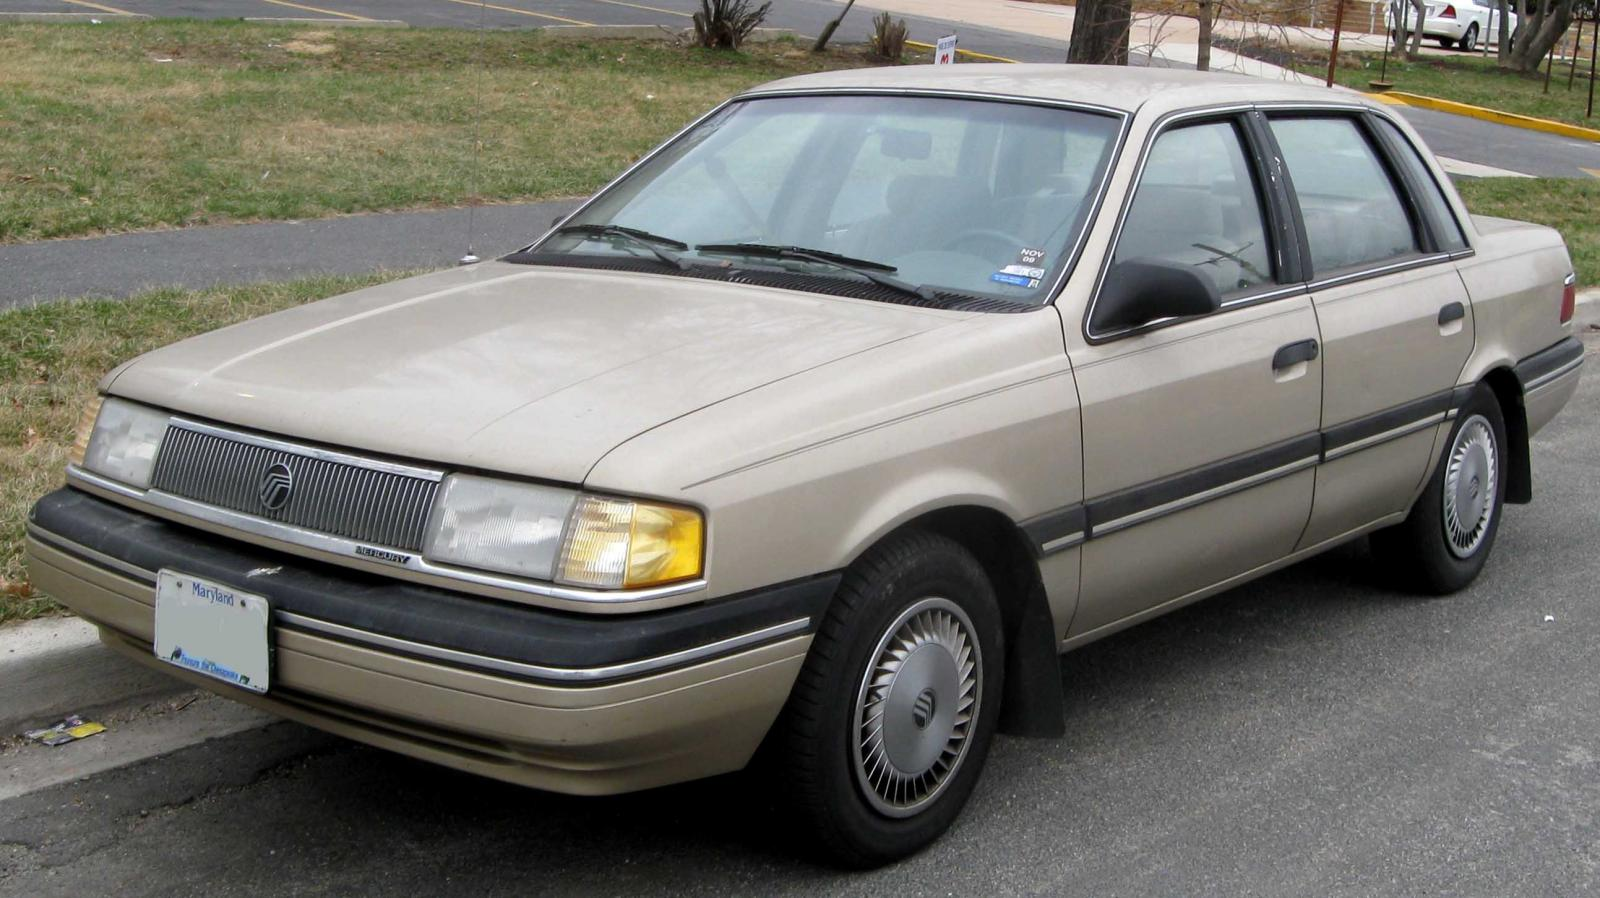 800 1024 1280 1600 origin 1990 mercury topaz